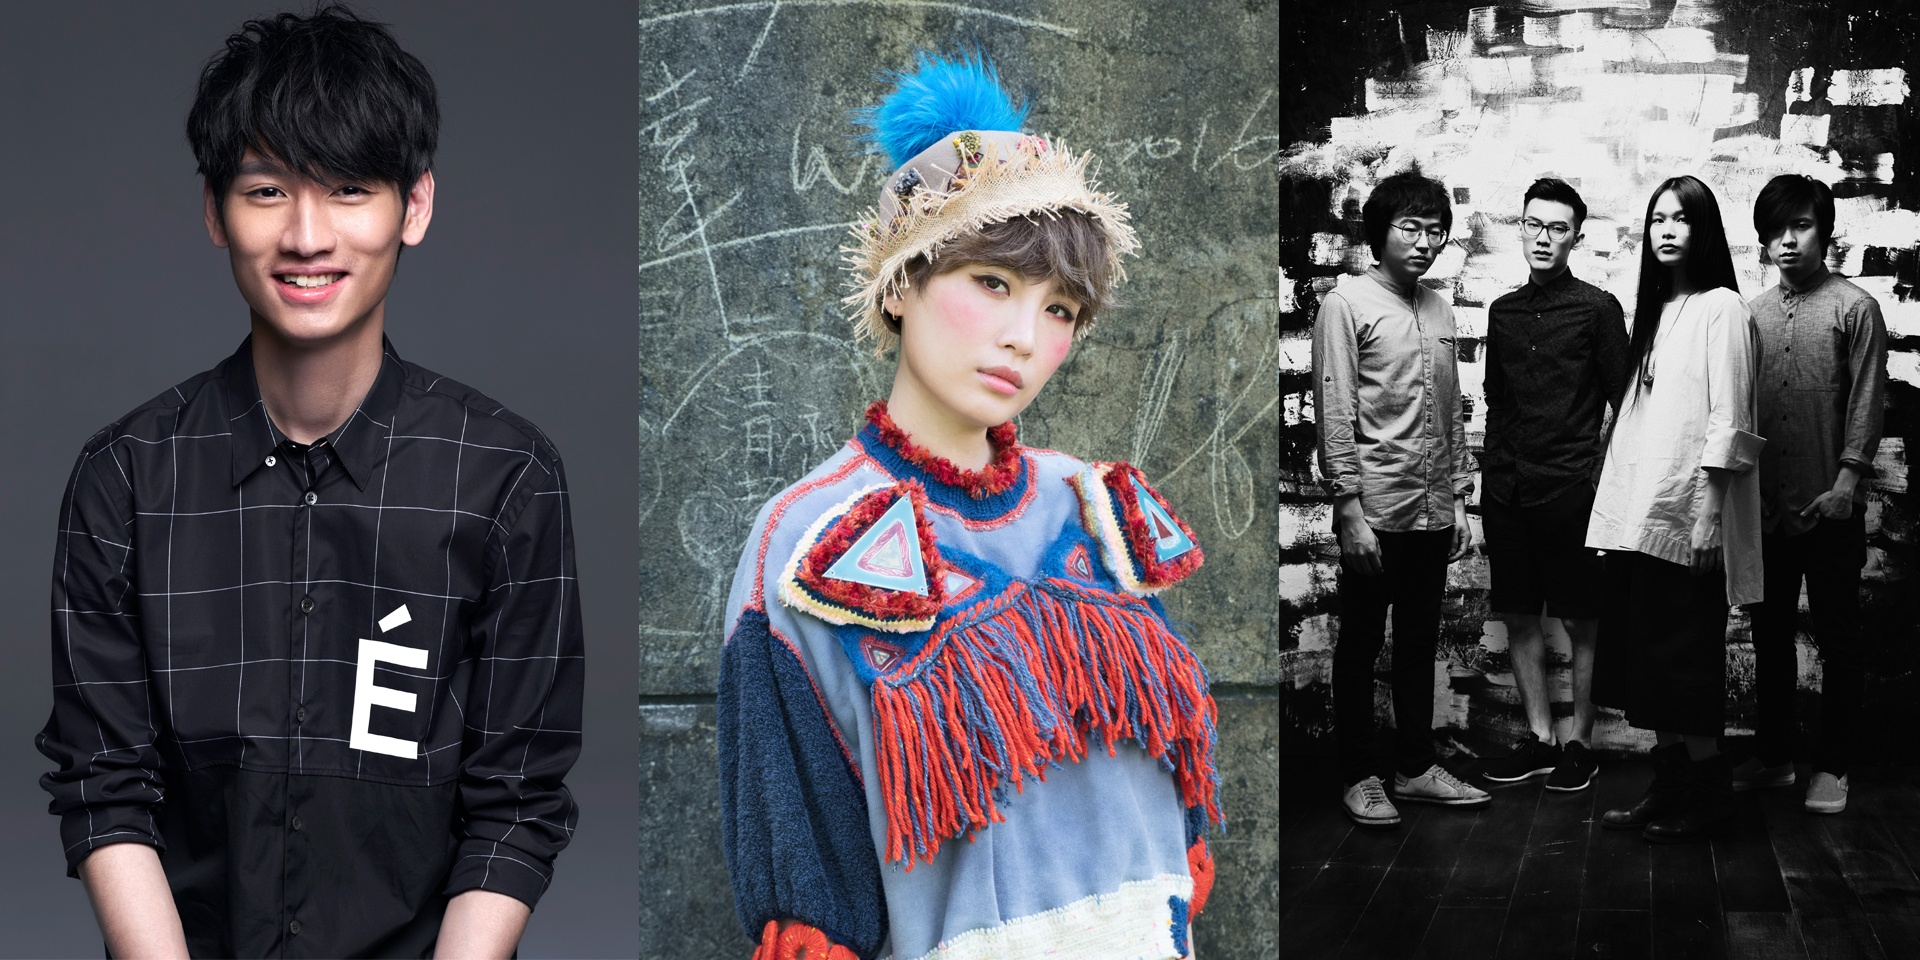 Waa Wei, Hello Nico, Boon Hui Lu, Ling Kai and more to perform at Calling in::music this June